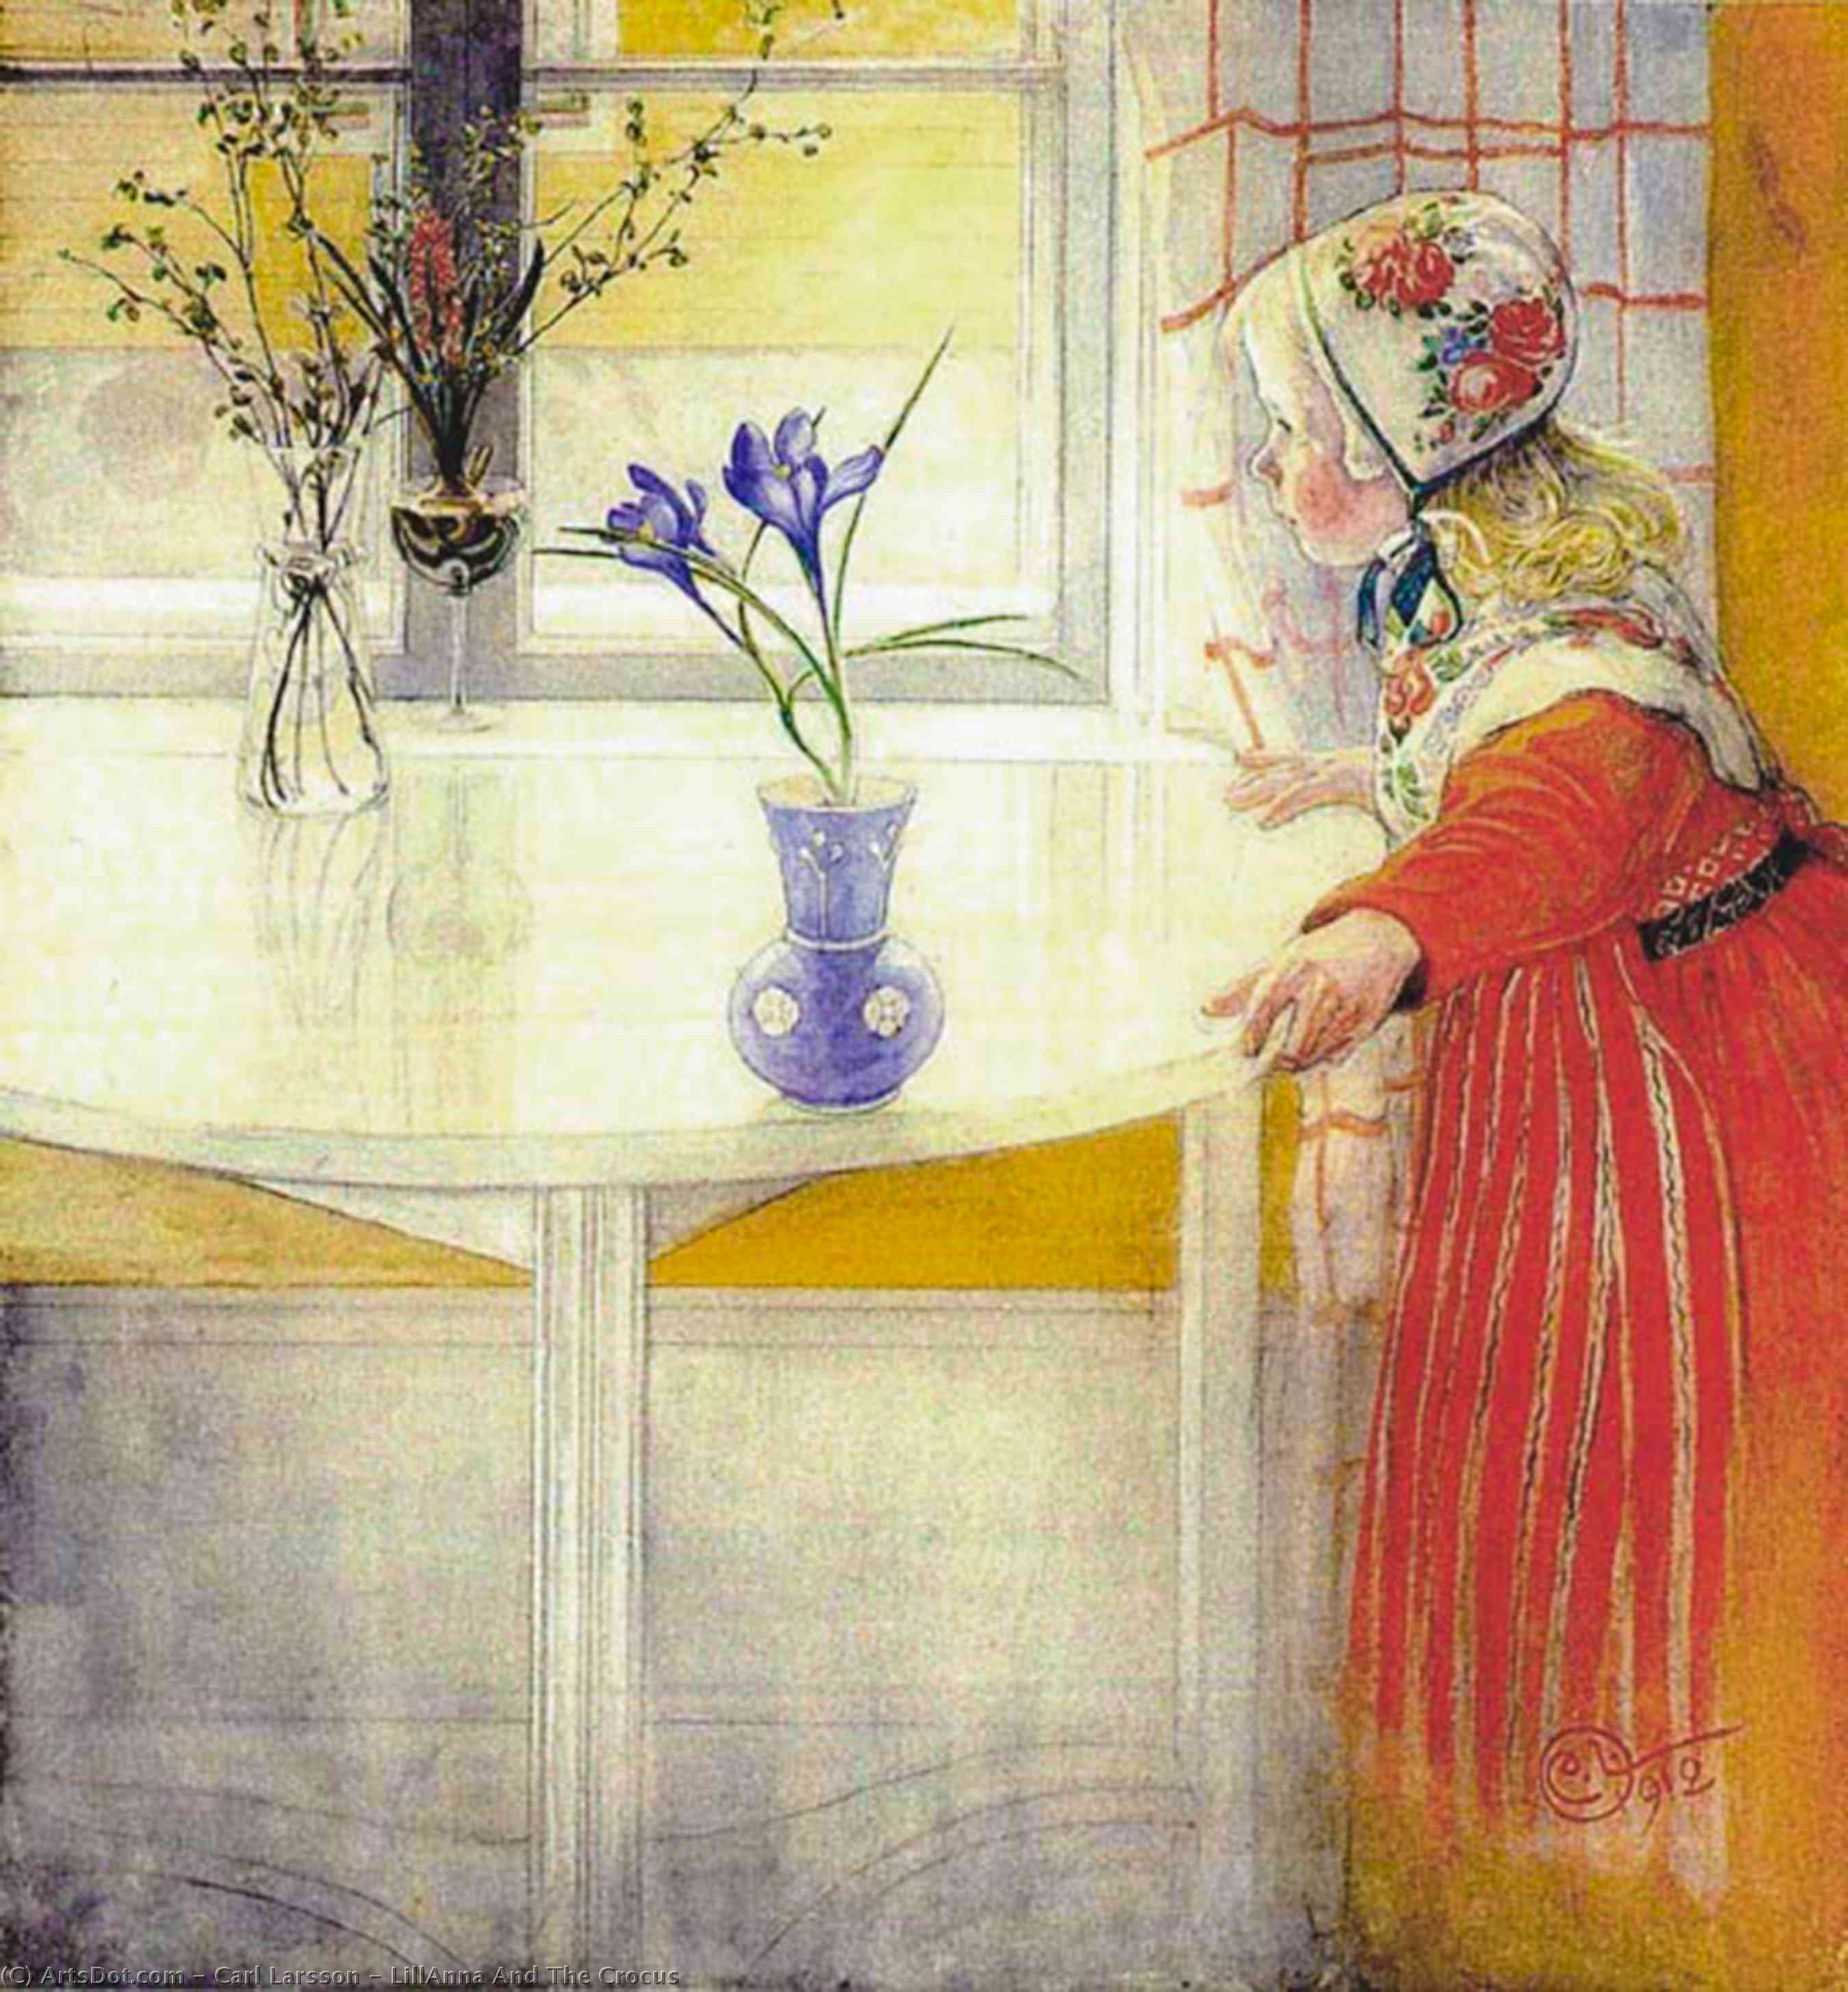 Order Oil Painting : LillAnna And The Crocus, 1912 by Carl Larsson (1919-1919, Sweden) | ArtsDot.com